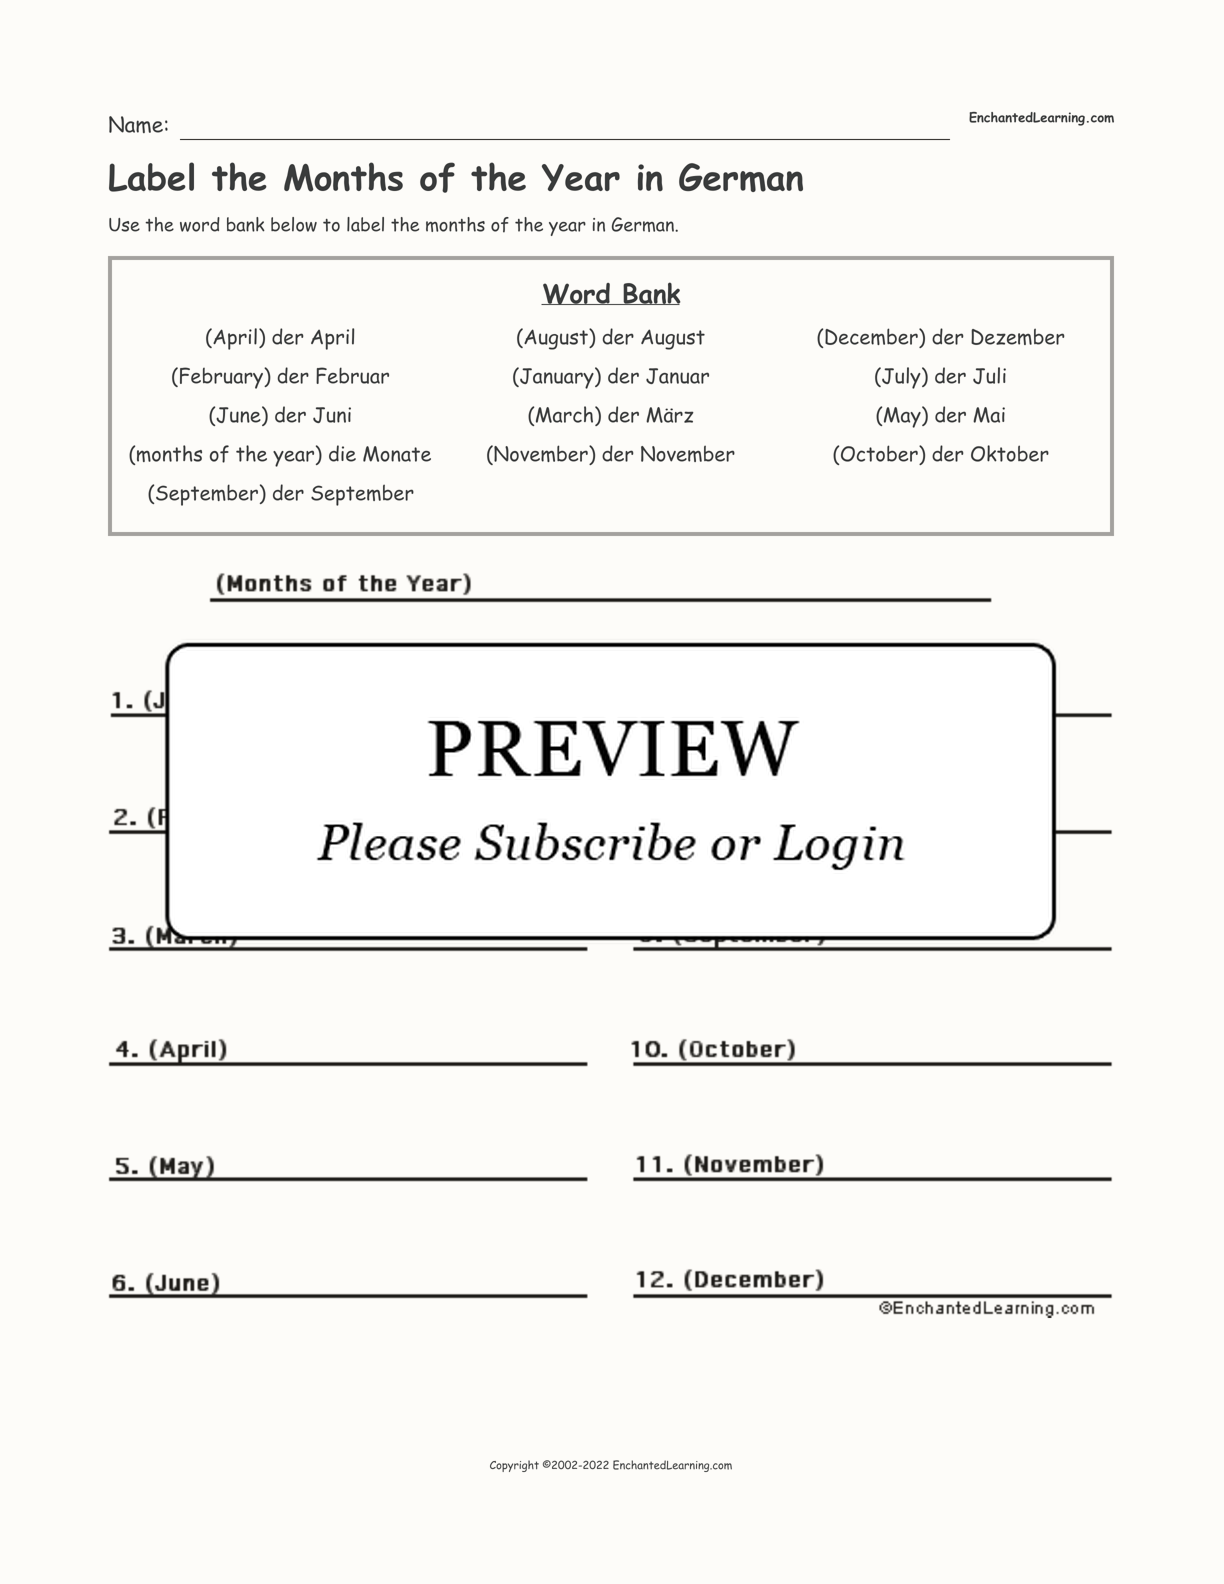 Label the Months of the Year in German interactive worksheet page 1